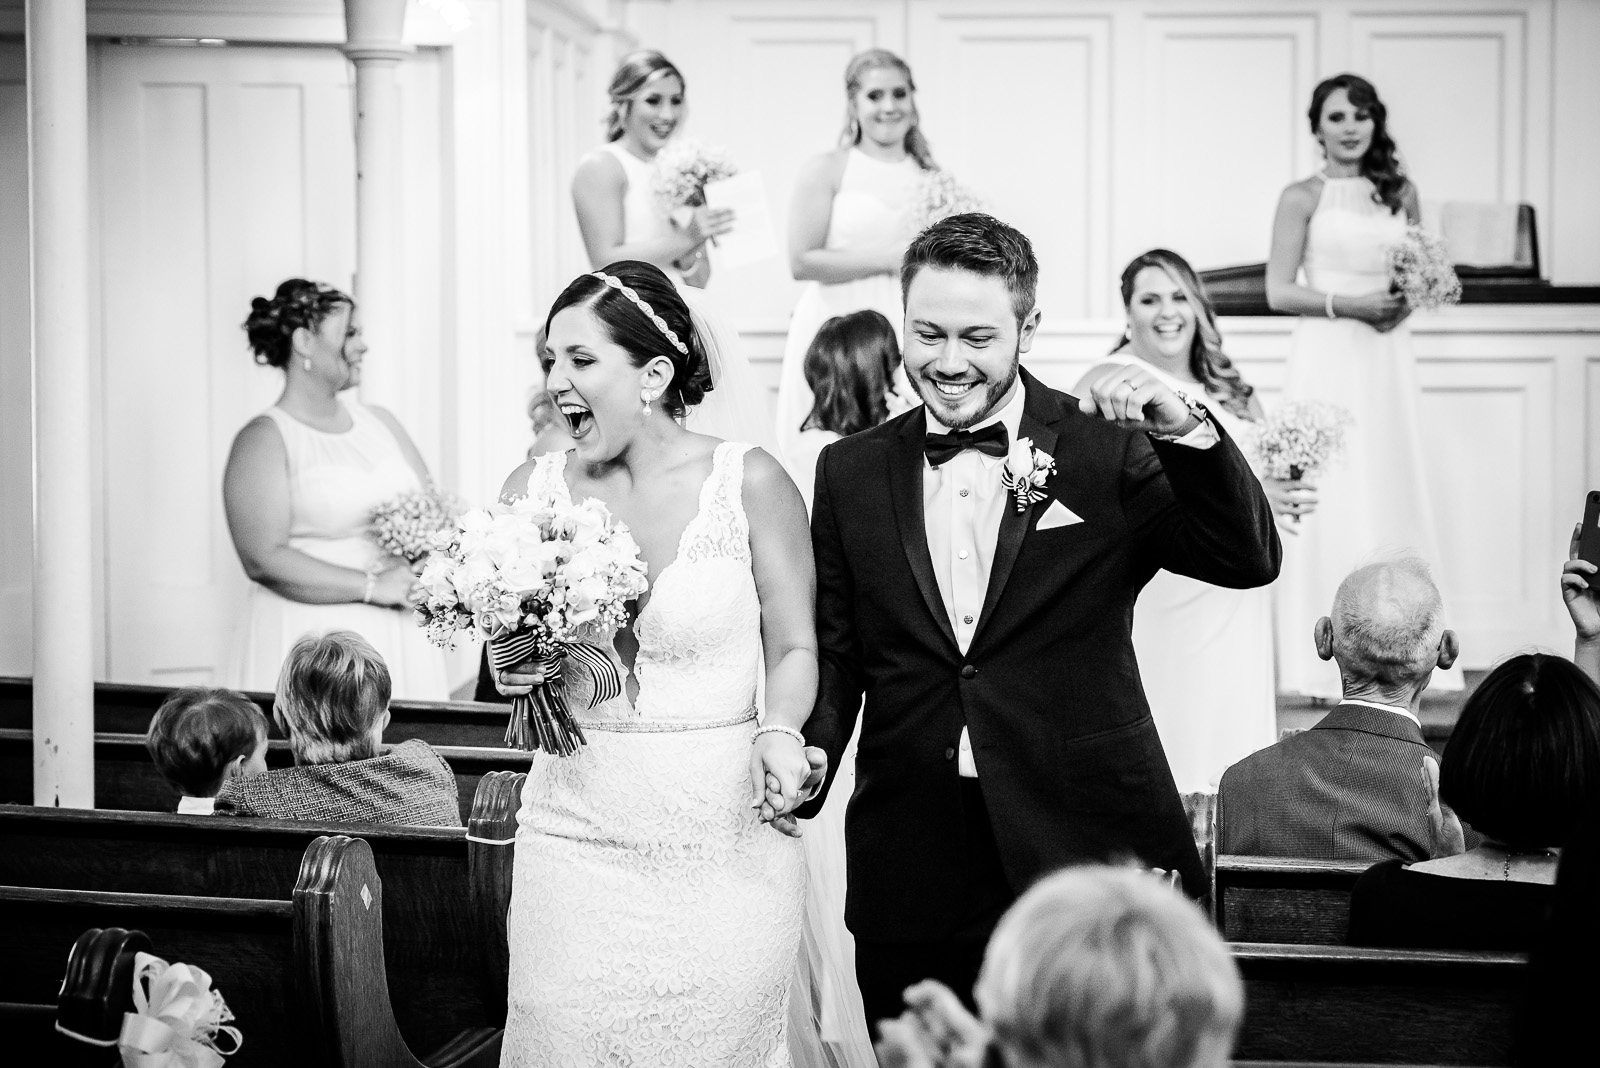 Eric_and_Christy_Photography_Blog_2016_Best_Wedding_Moments-10